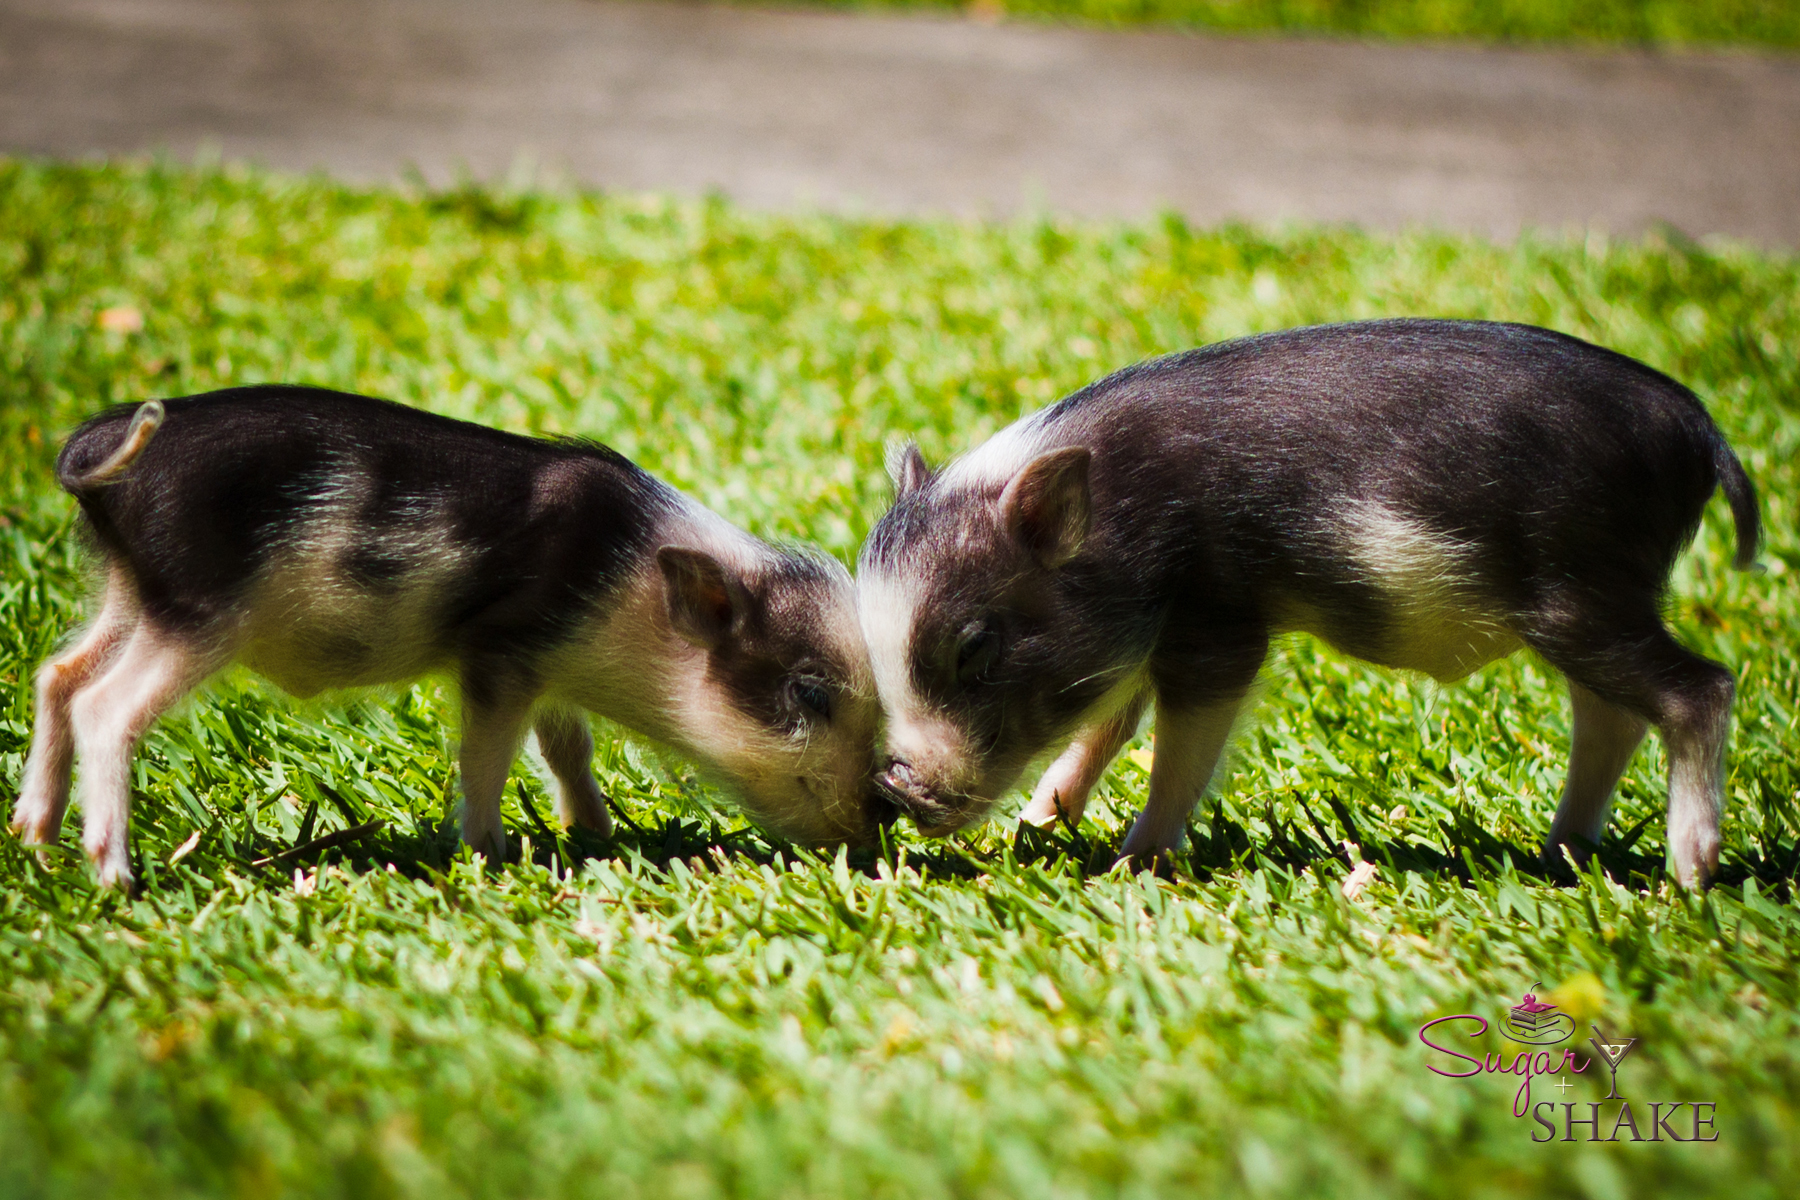 Posh piglets. The Ritz-Carlton adopted these teensy guys (gals?) and are raising them in their Jean-Michel Cousteau Ambassadors of the Environment Center. Not to eat, or anything. Just to look cute. © 2012 Sugar + Shake